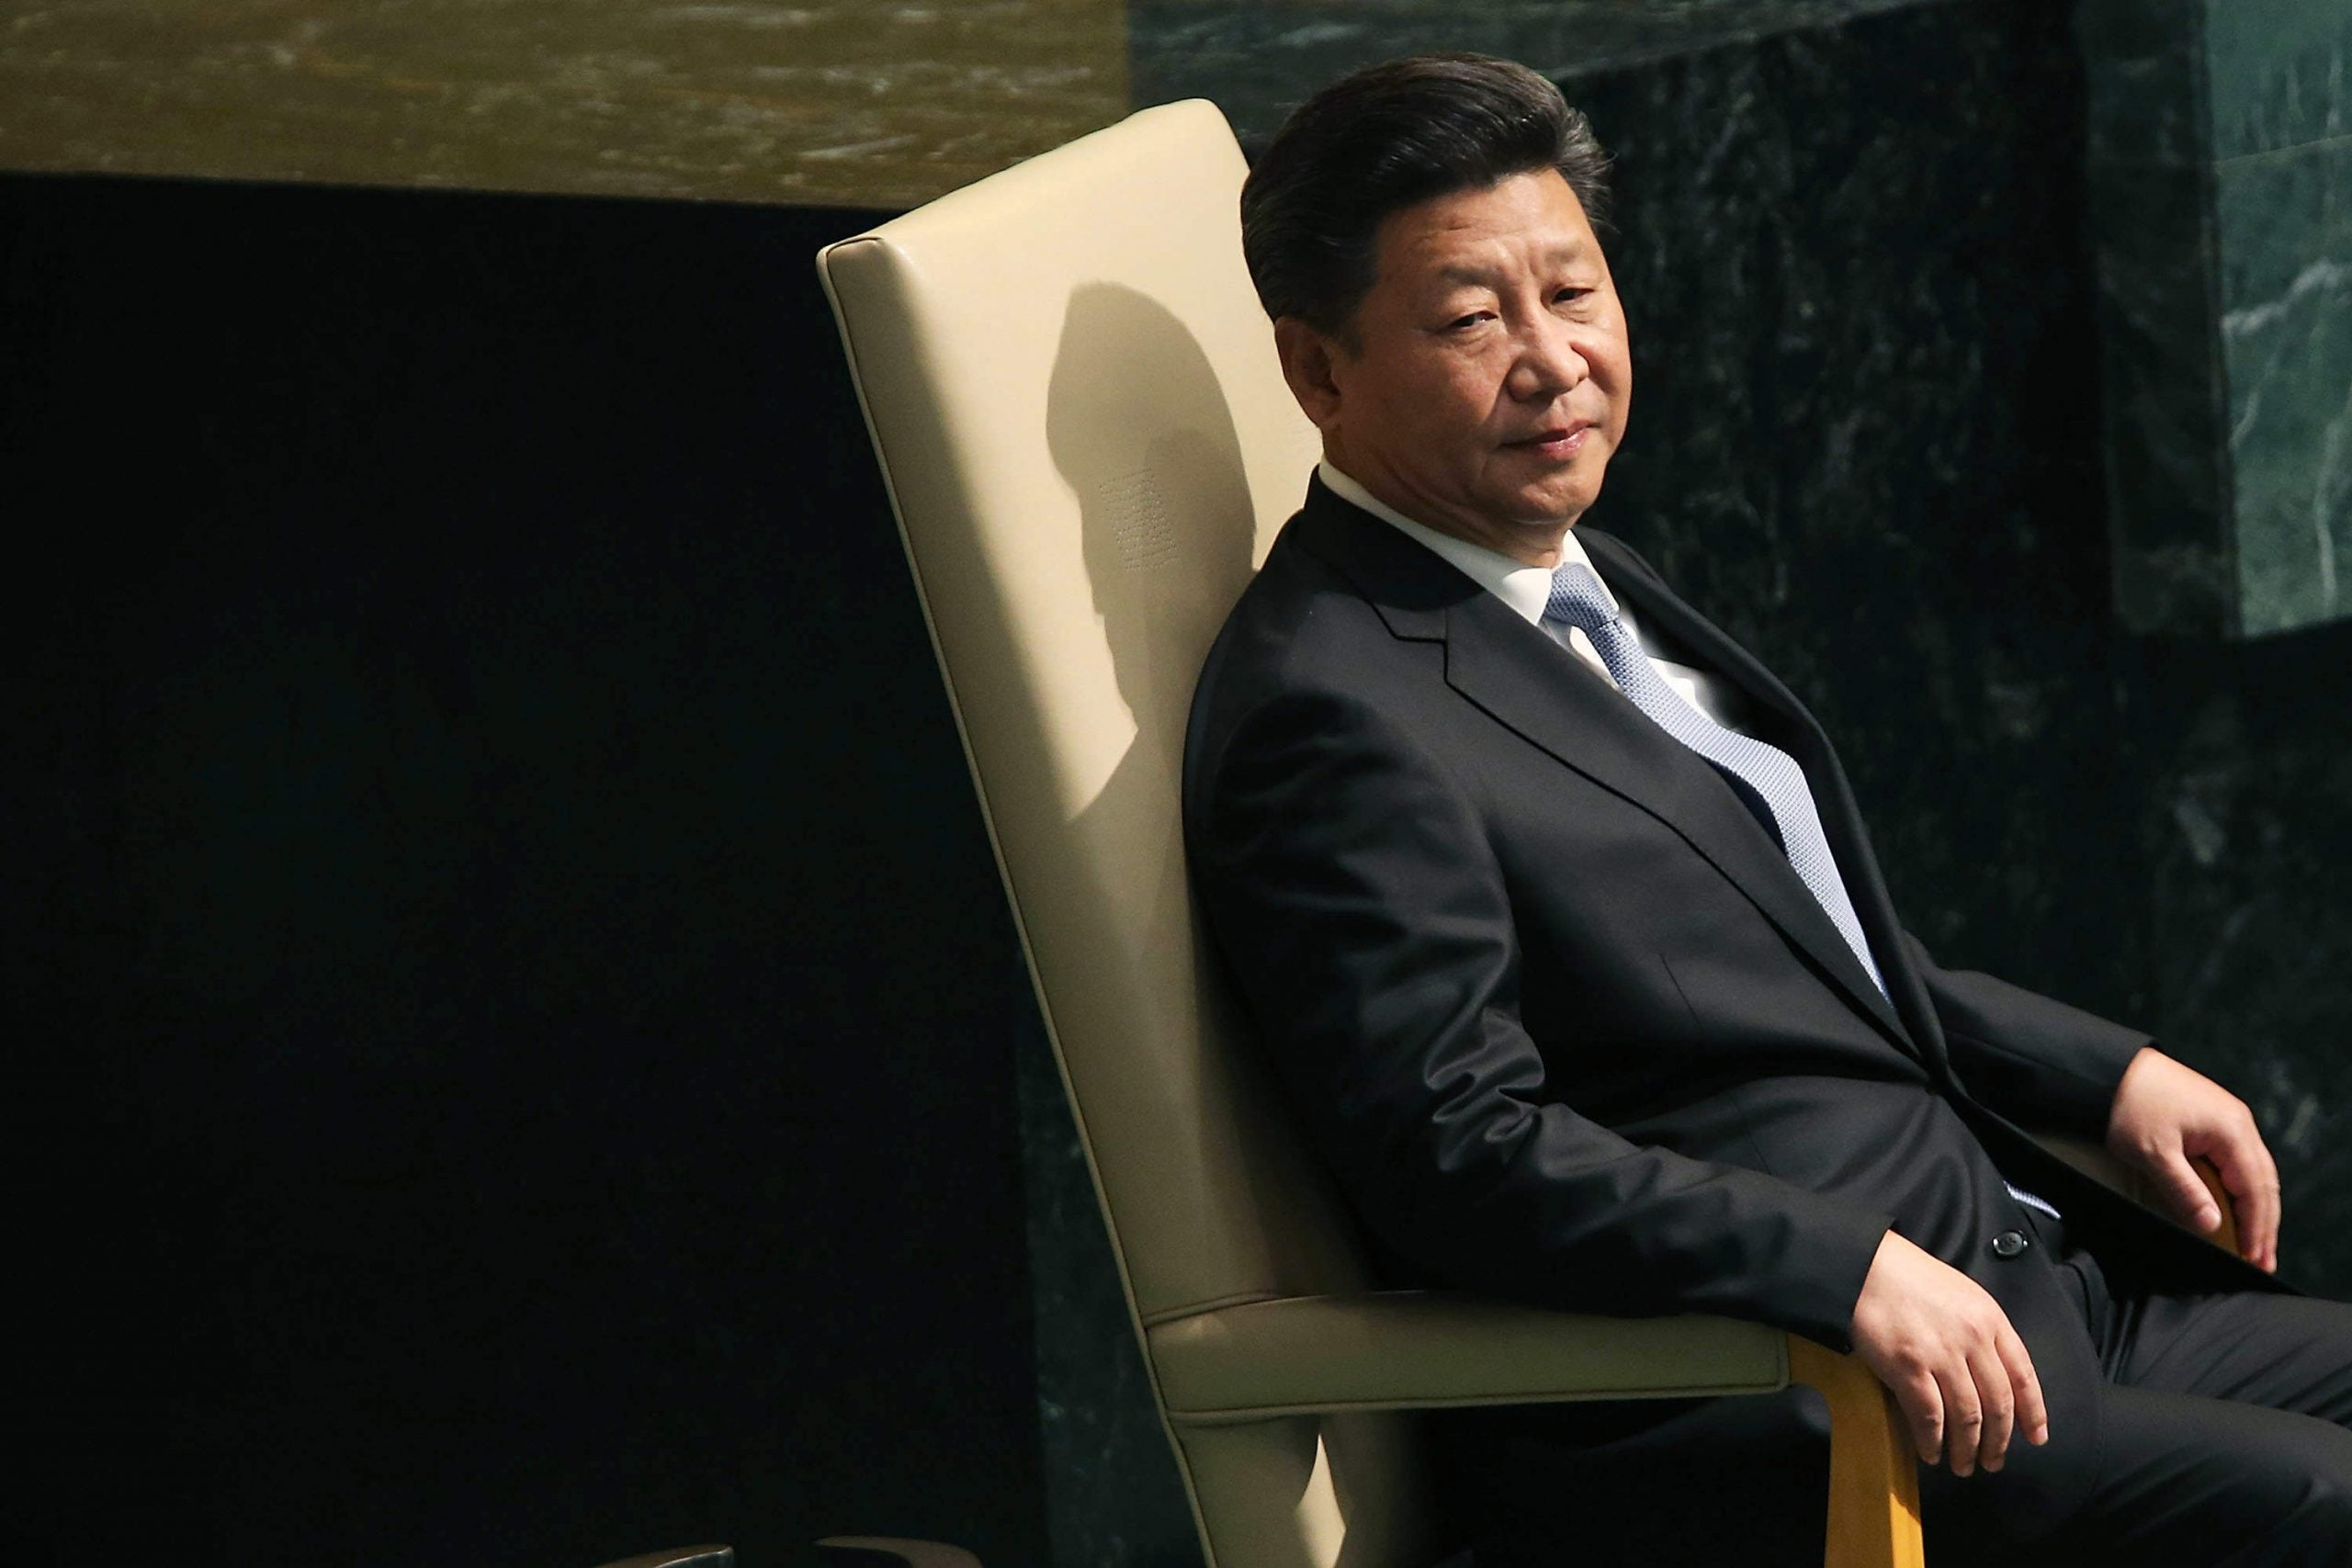 Five tips on talking to China